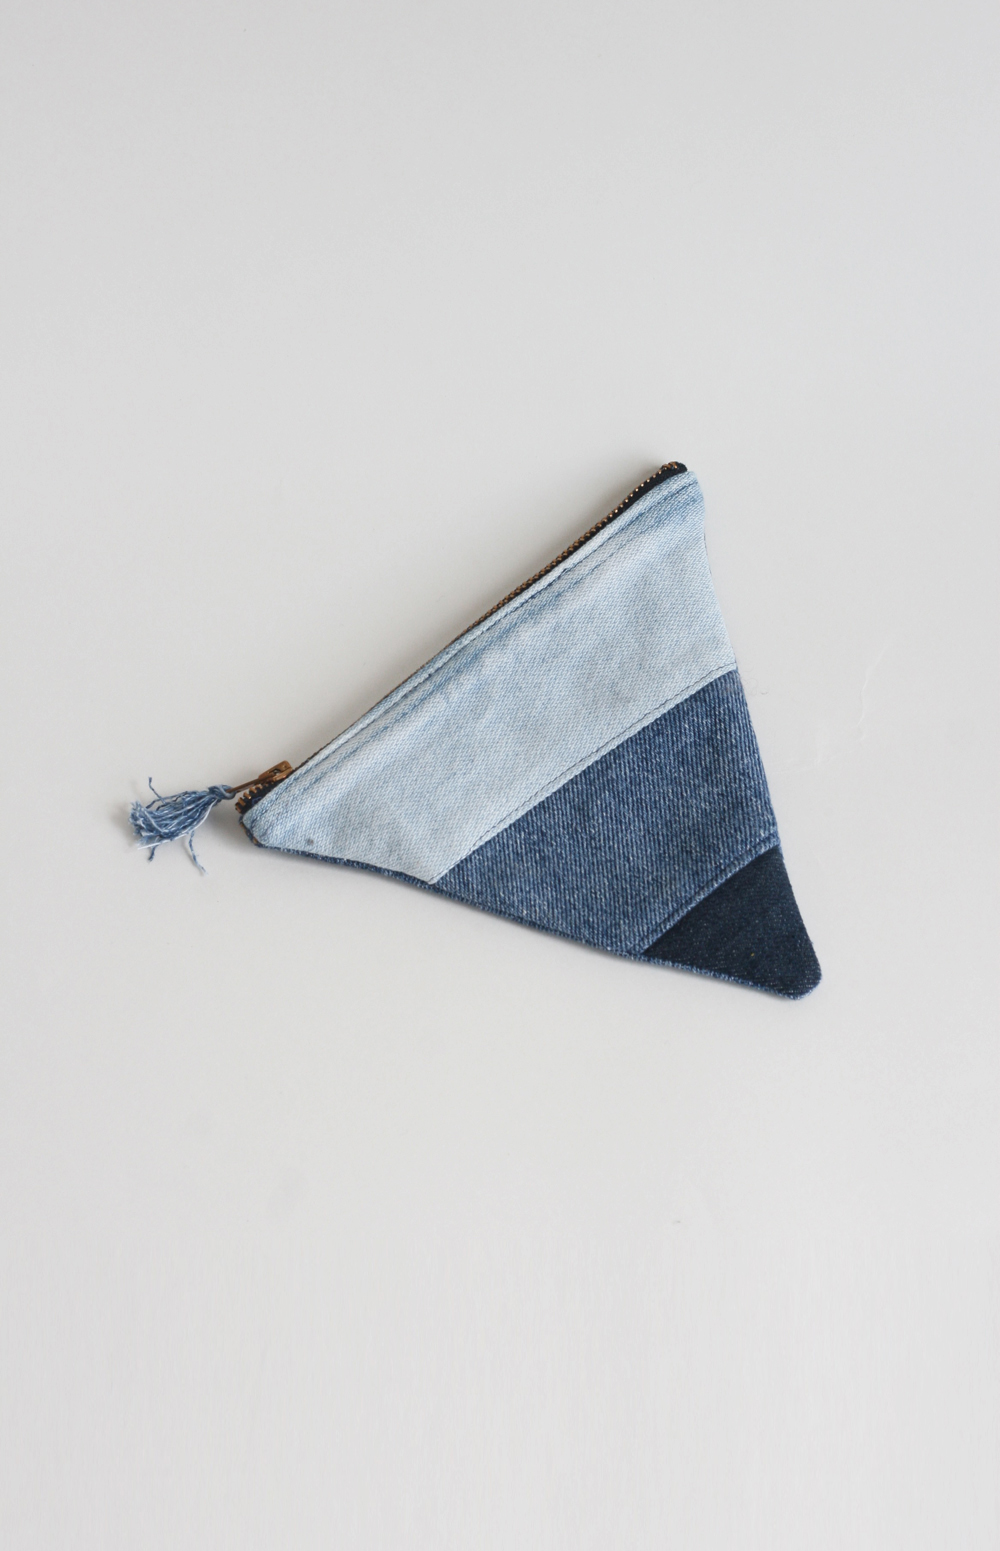 denim+triangle+pouch+copy.jpg